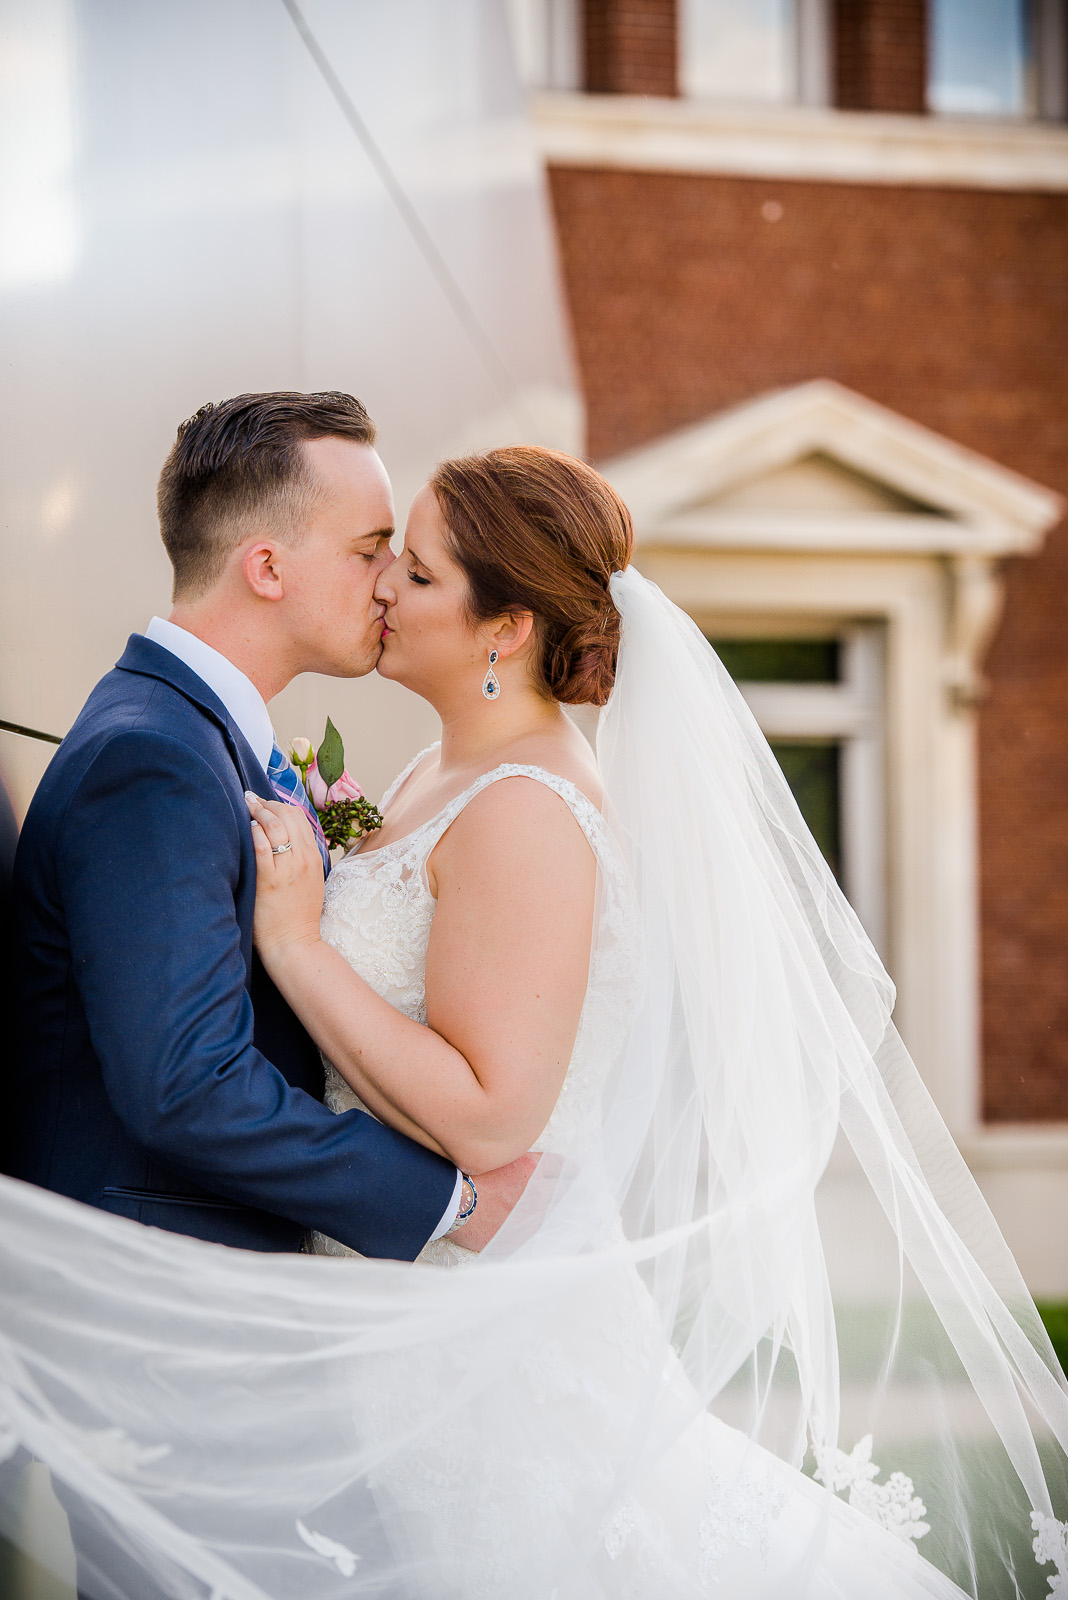 Eric_and_Christy_Photography_Blog_2018_Portraits-50